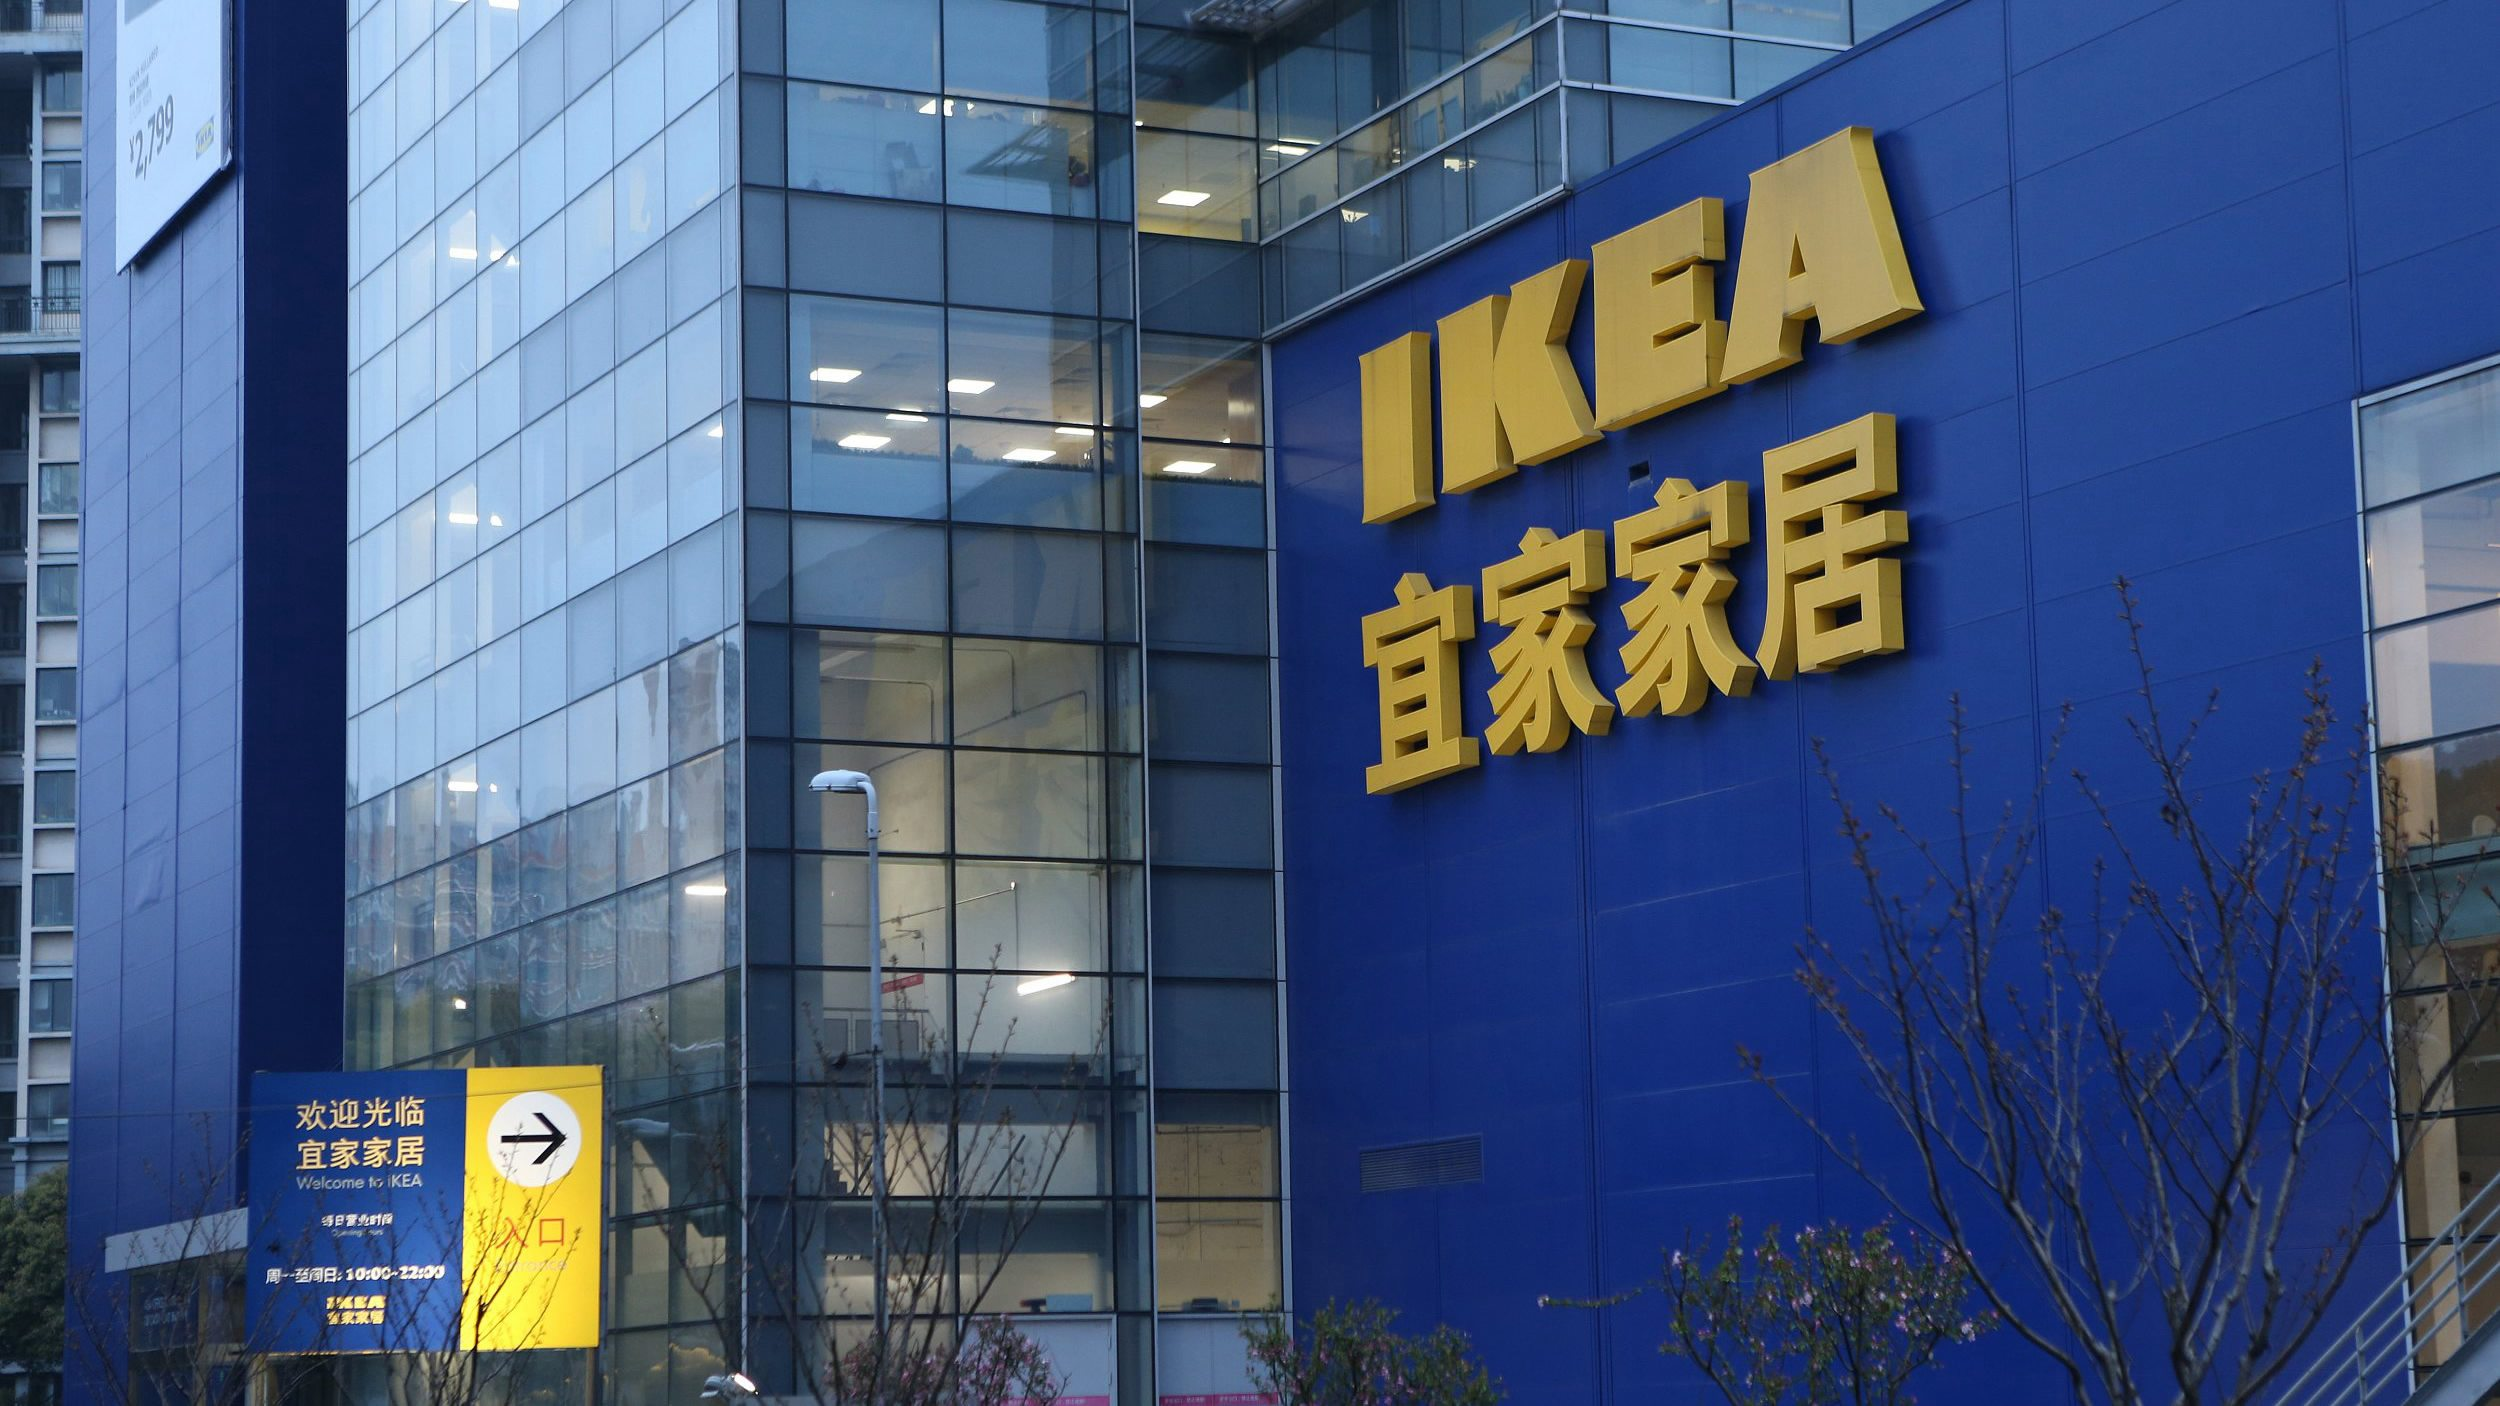 IKEA to team up with third party e-commerce site in China